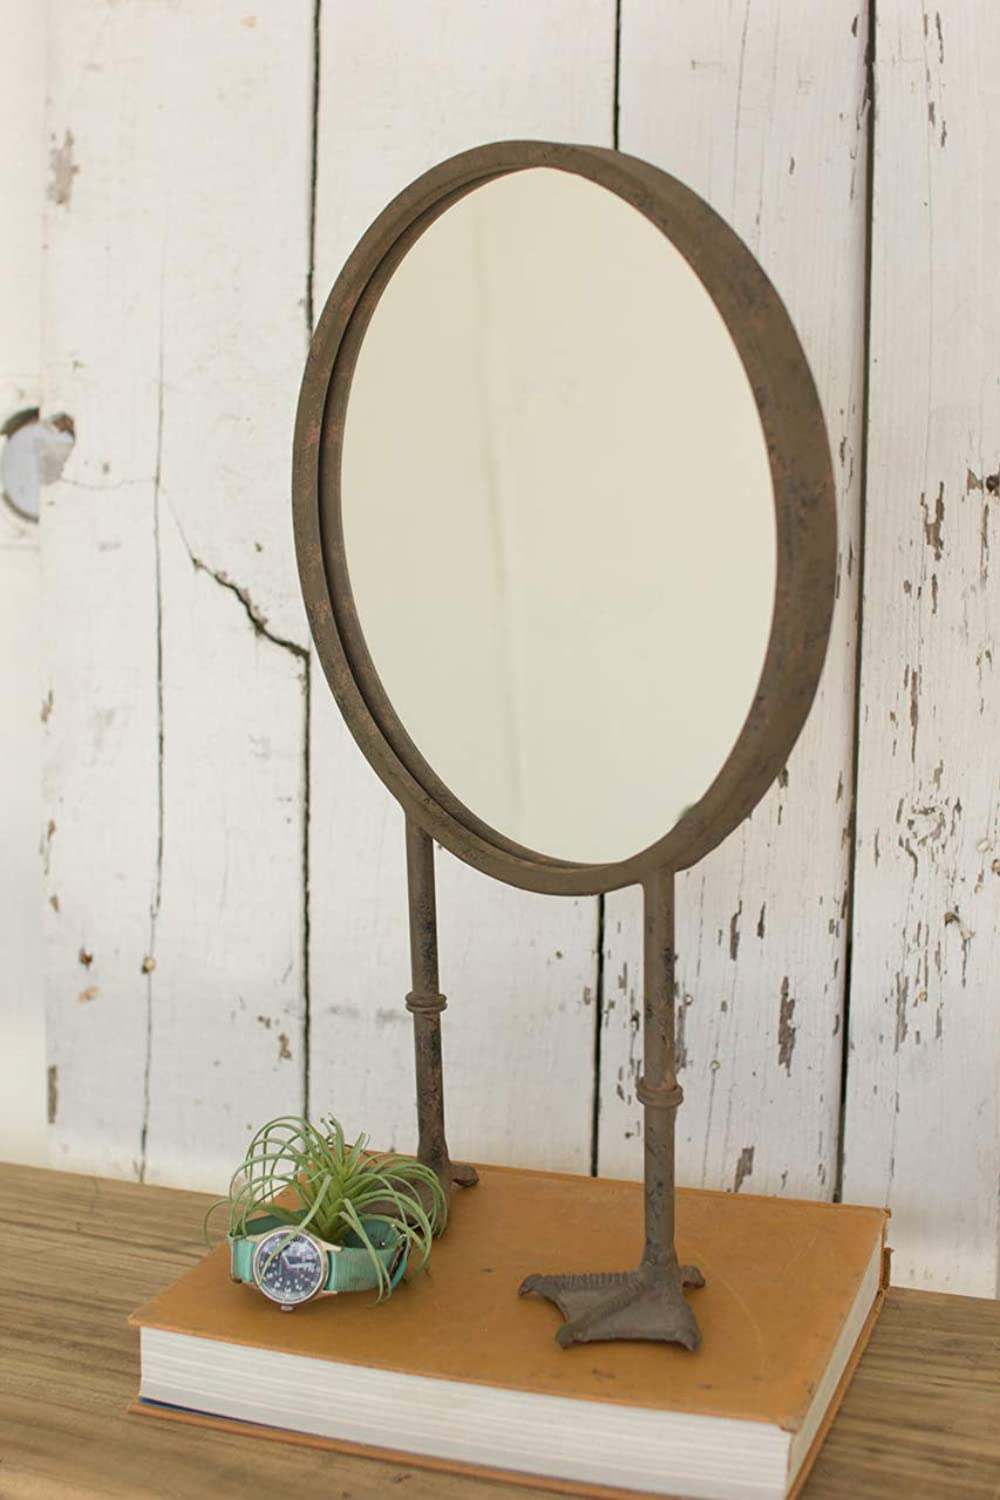 Kalalou CJS1110 Rond Table TOP Mirror with Duck FEET